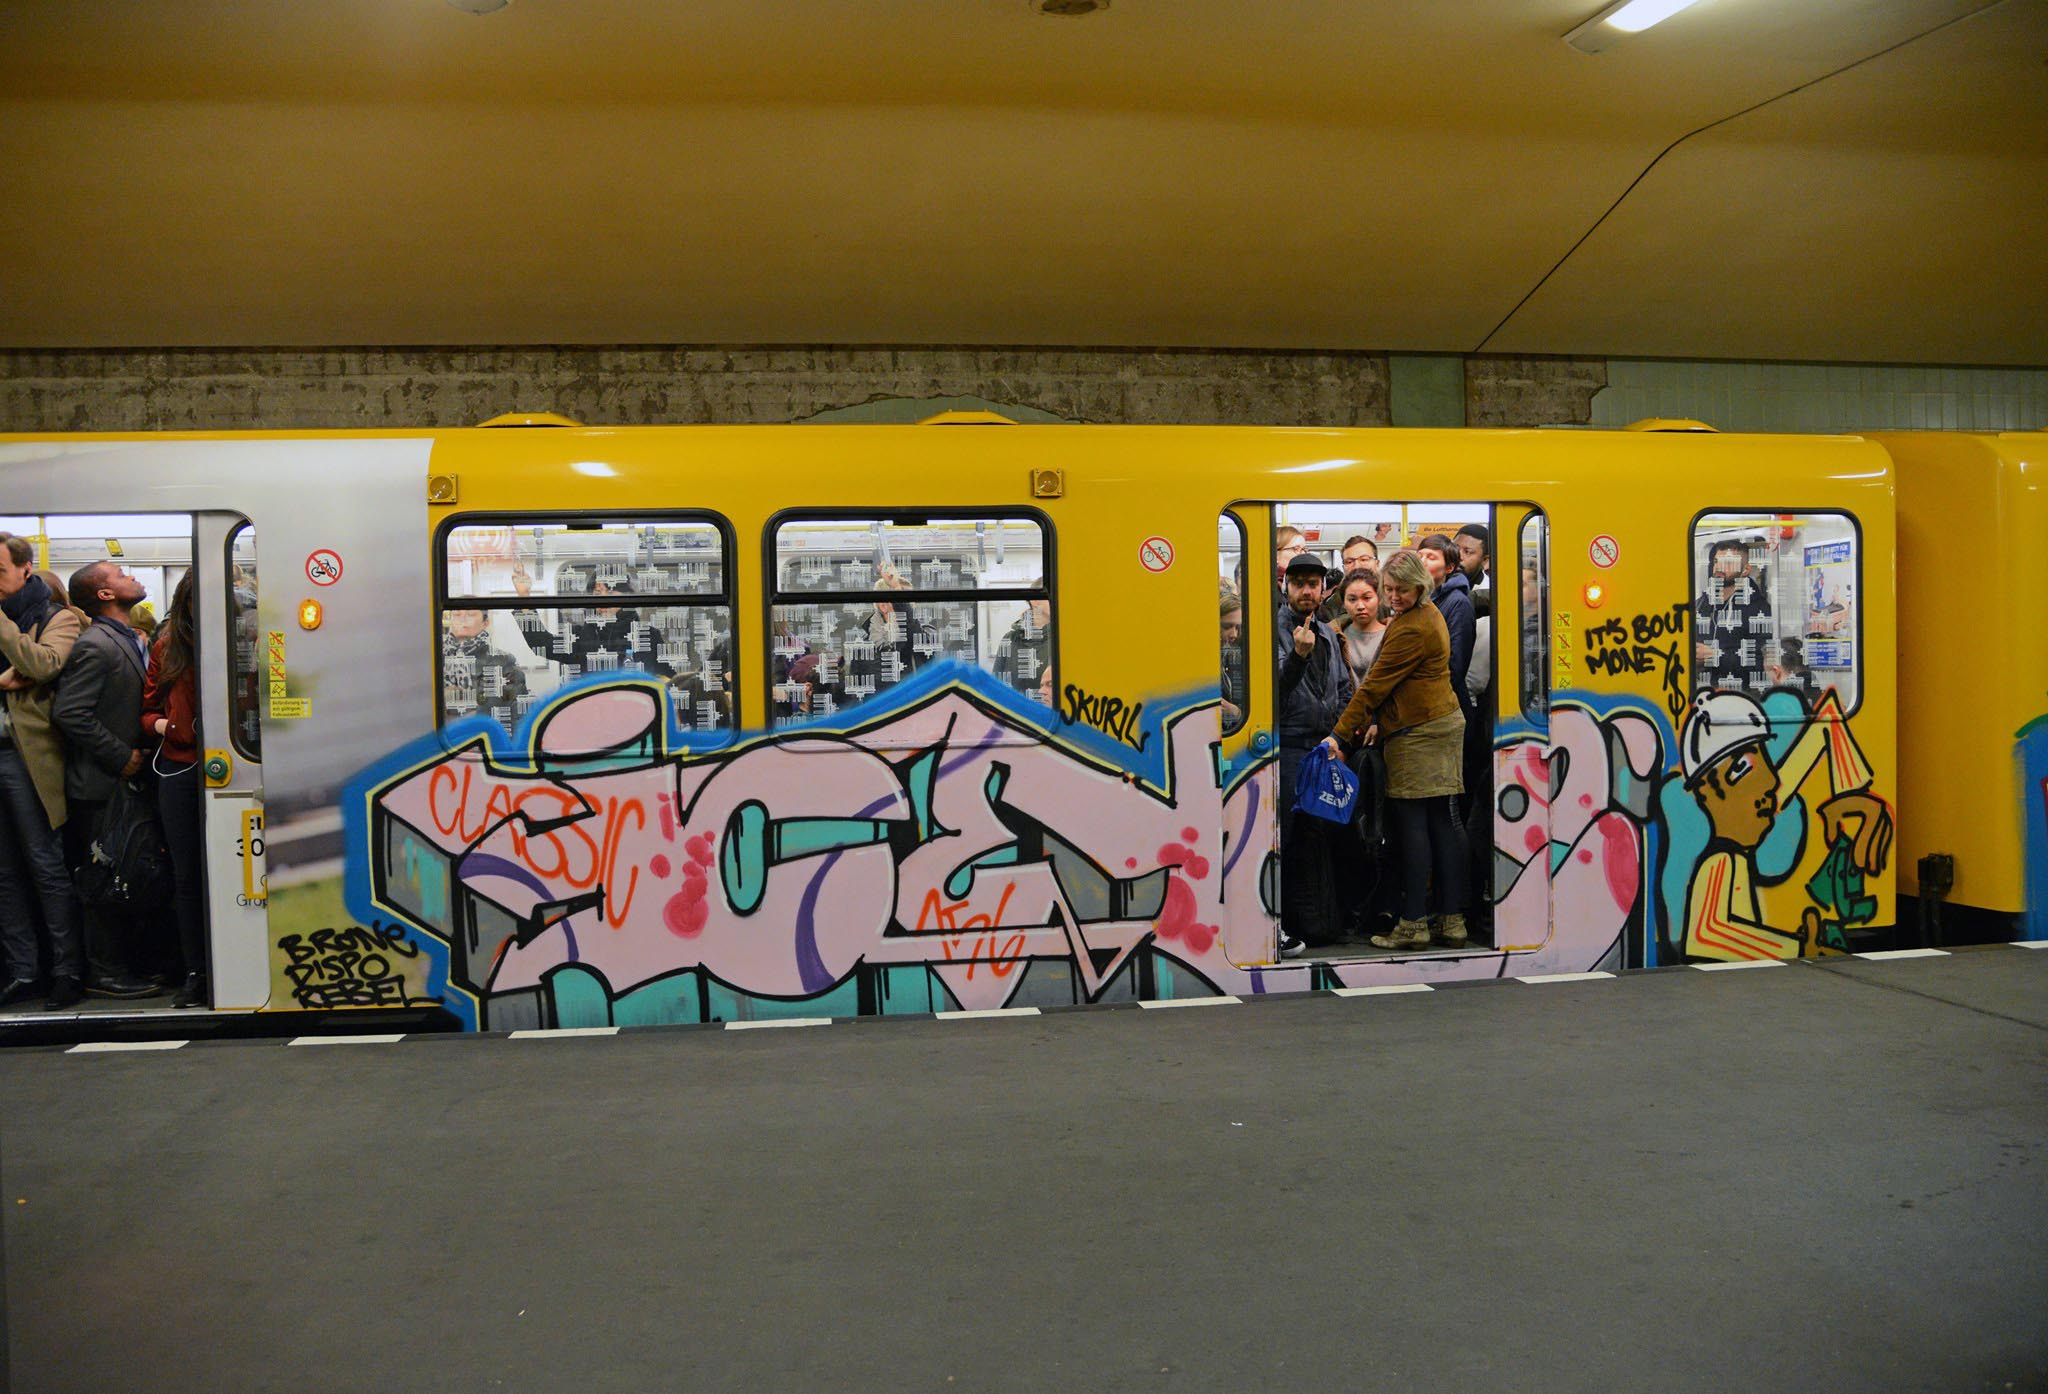 graffiti writing train subway berlin germany running